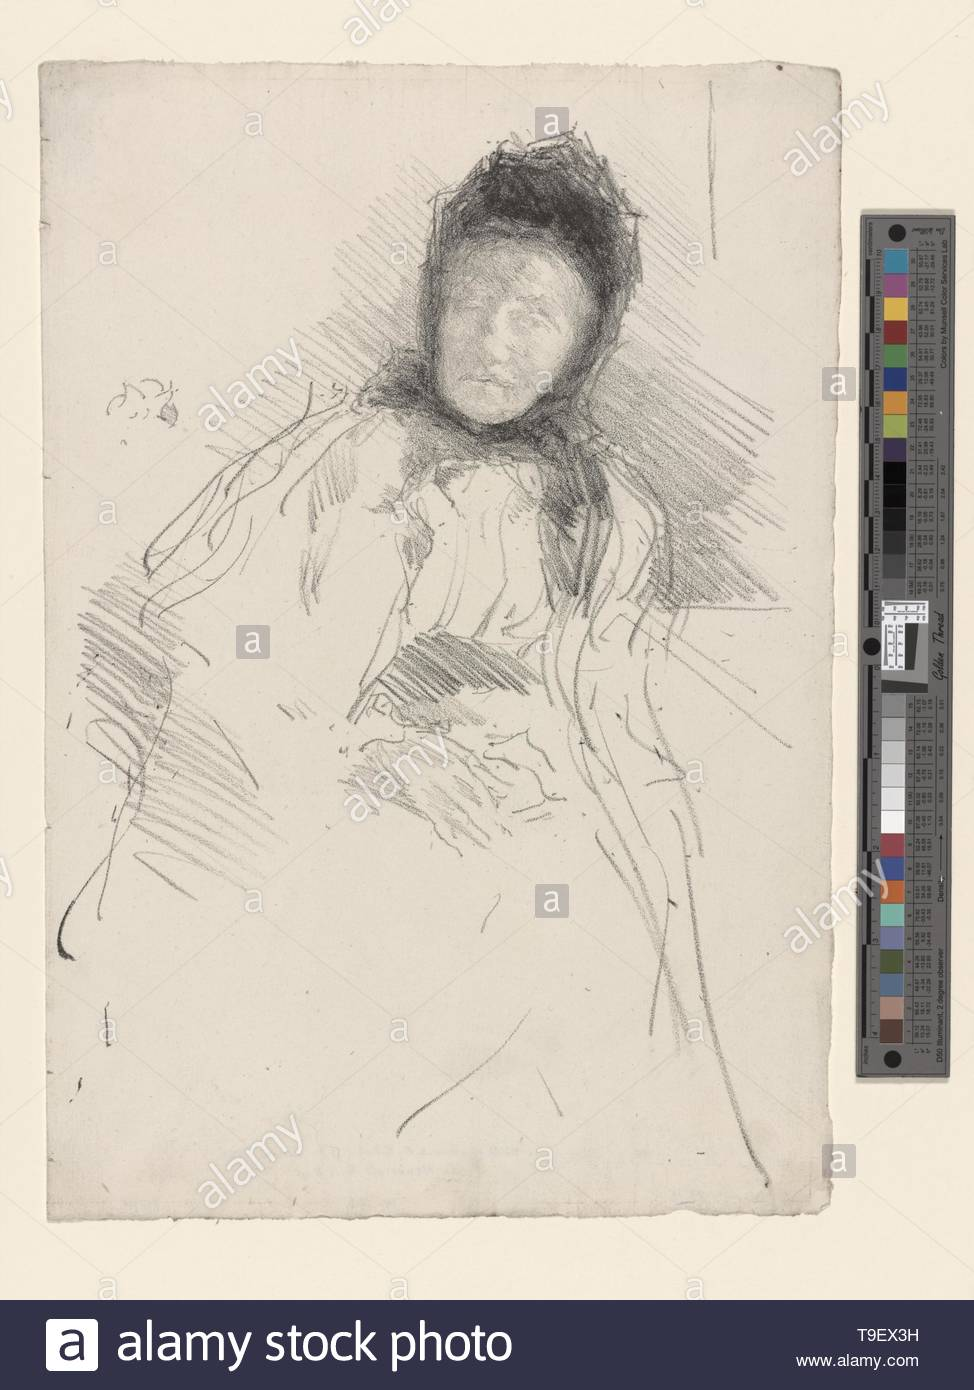 Whistler,JamesMcNeill(1834-1903)-Unfinished sketch of Lady Haden - Stock Image